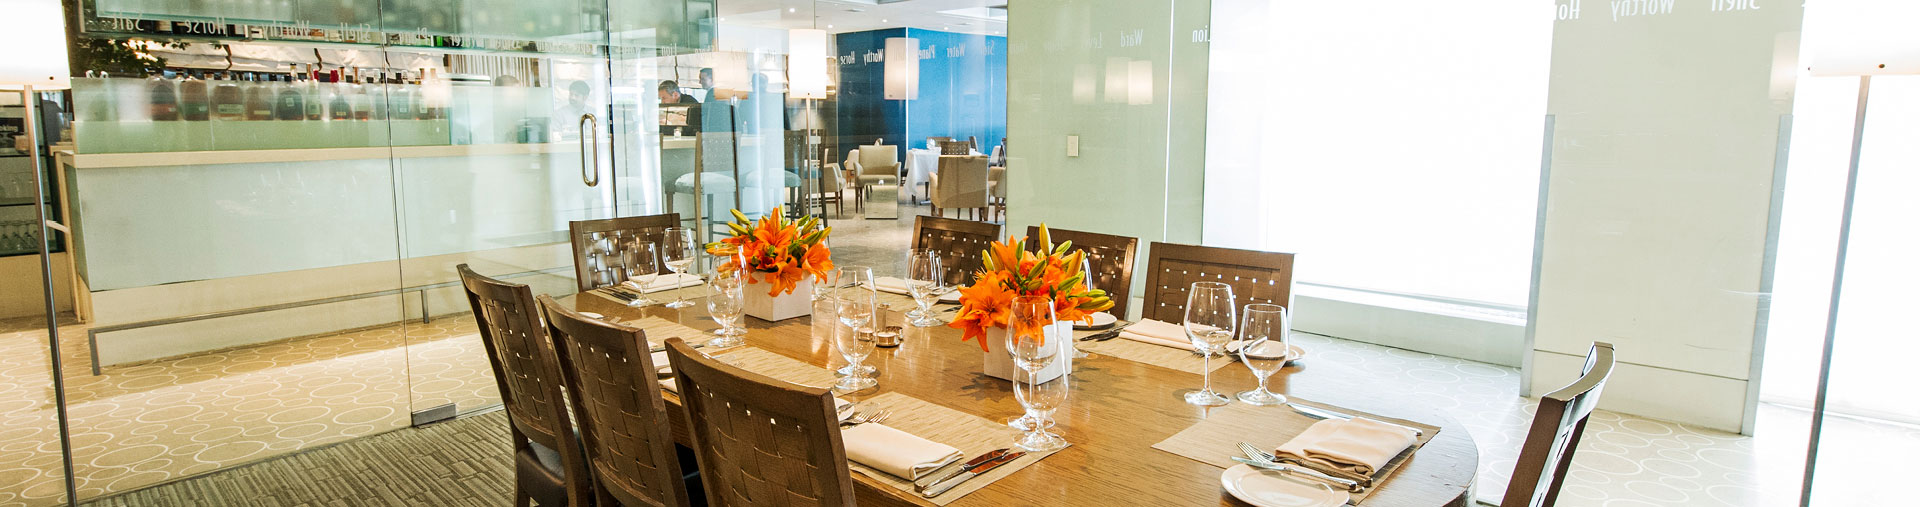 Private dining space at The Sea Grill at Rockefeller Center in NYC